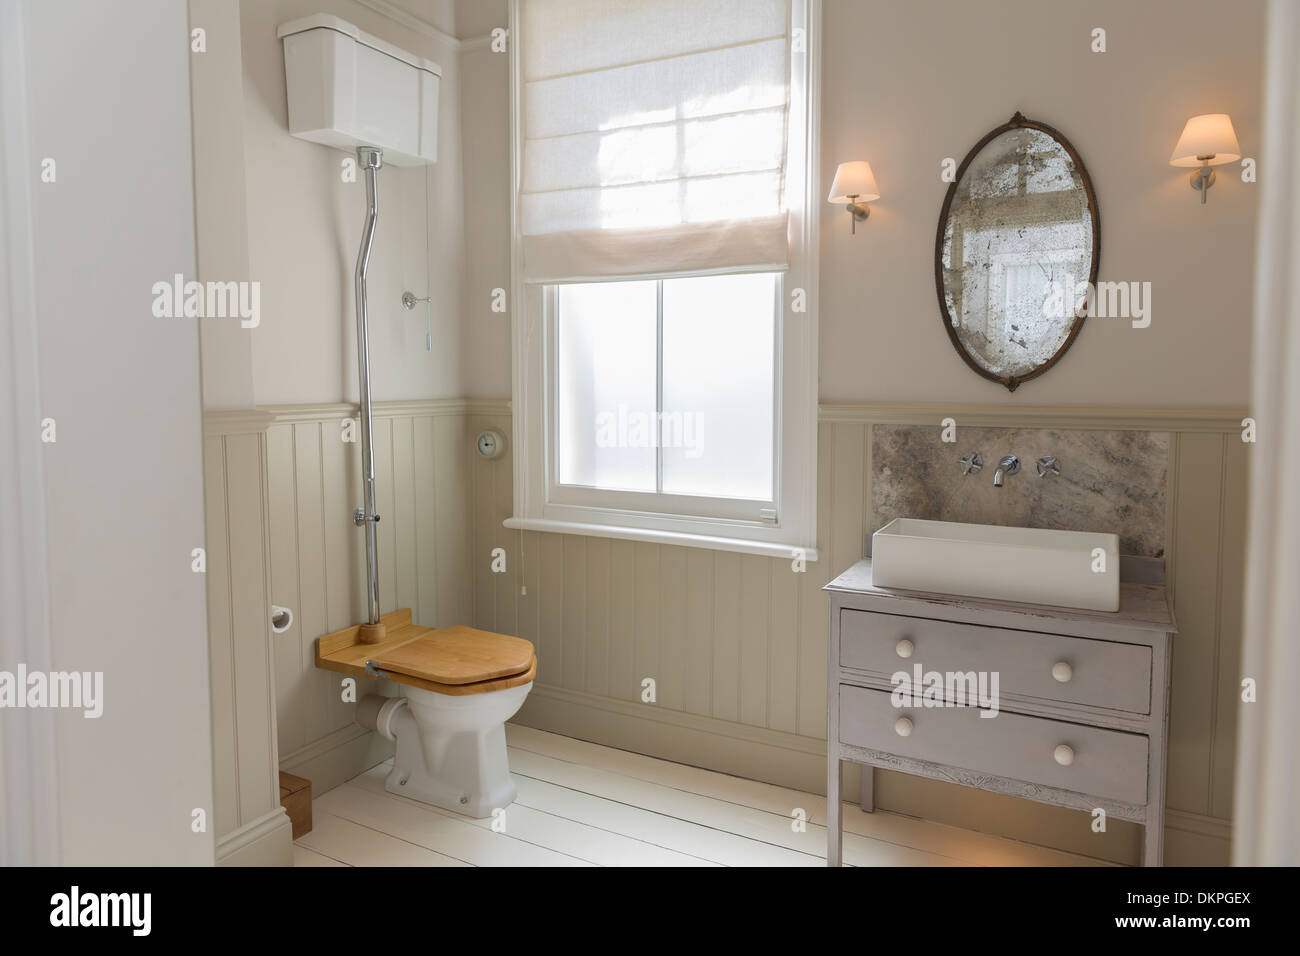 antique toilet stockfotos antique toilet bilder alamy. Black Bedroom Furniture Sets. Home Design Ideas